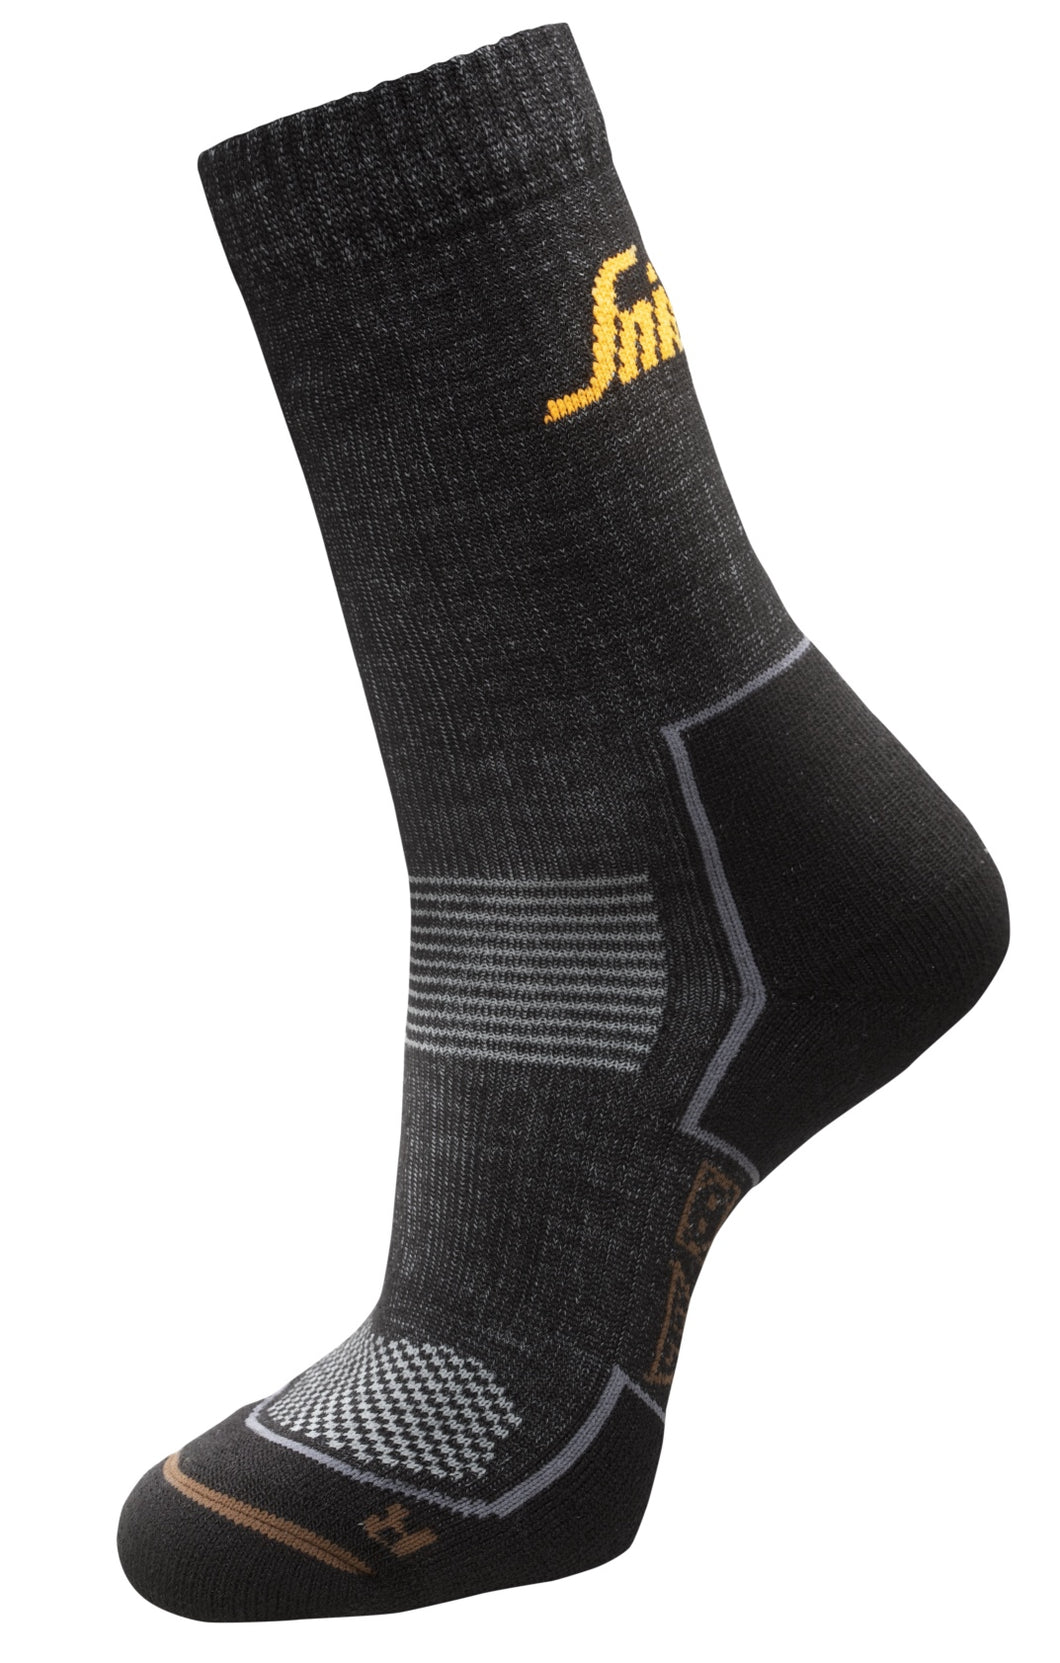 Snickers 9206 Ruff Work Cordura Wool Socks 2 Pack